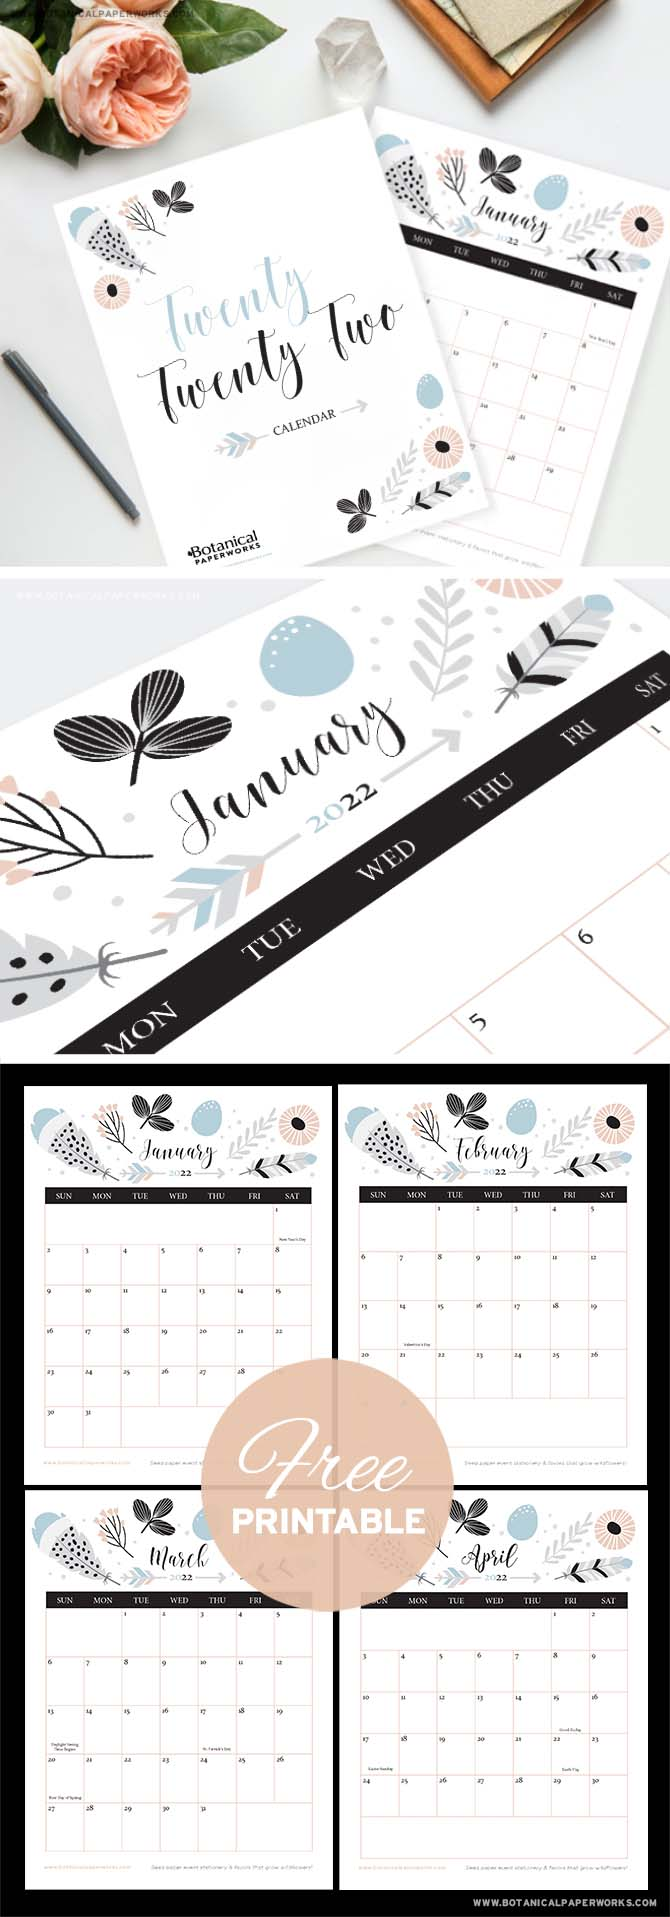 free printable 2022 calendars in a boho chic style